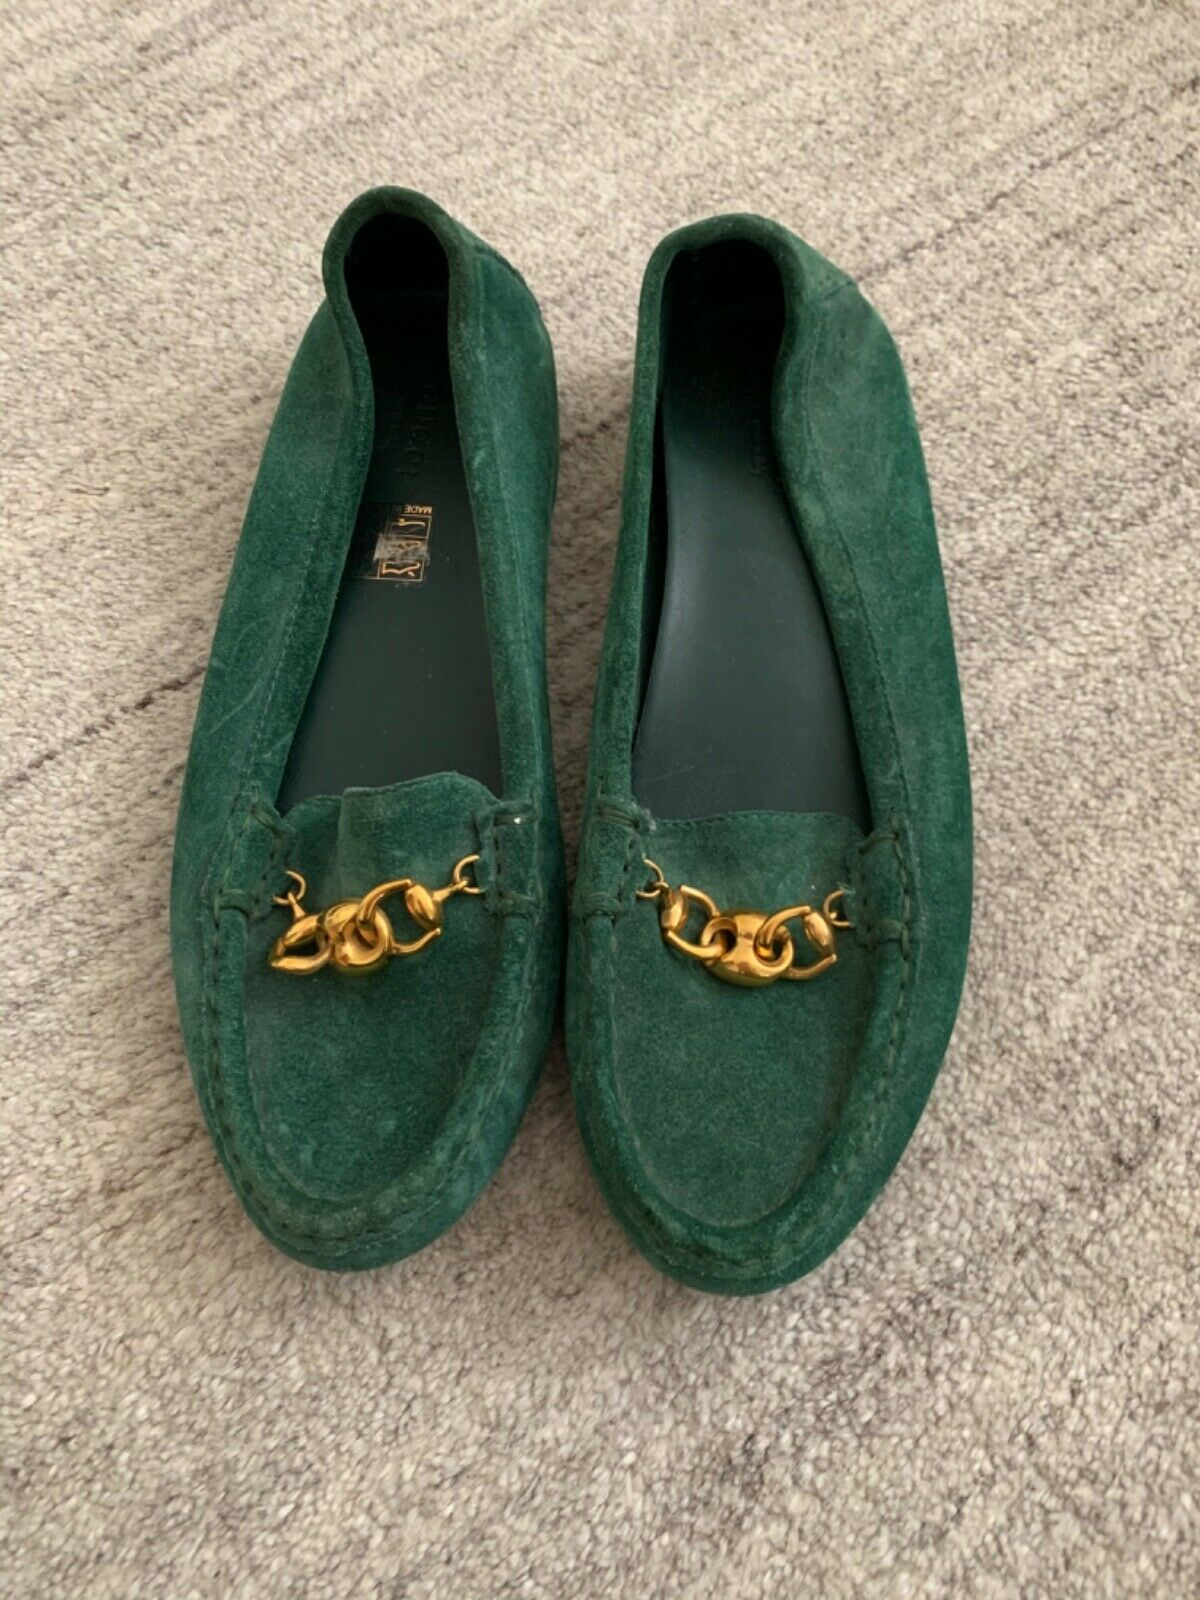 Gucci Suede Green Loafers - image 1